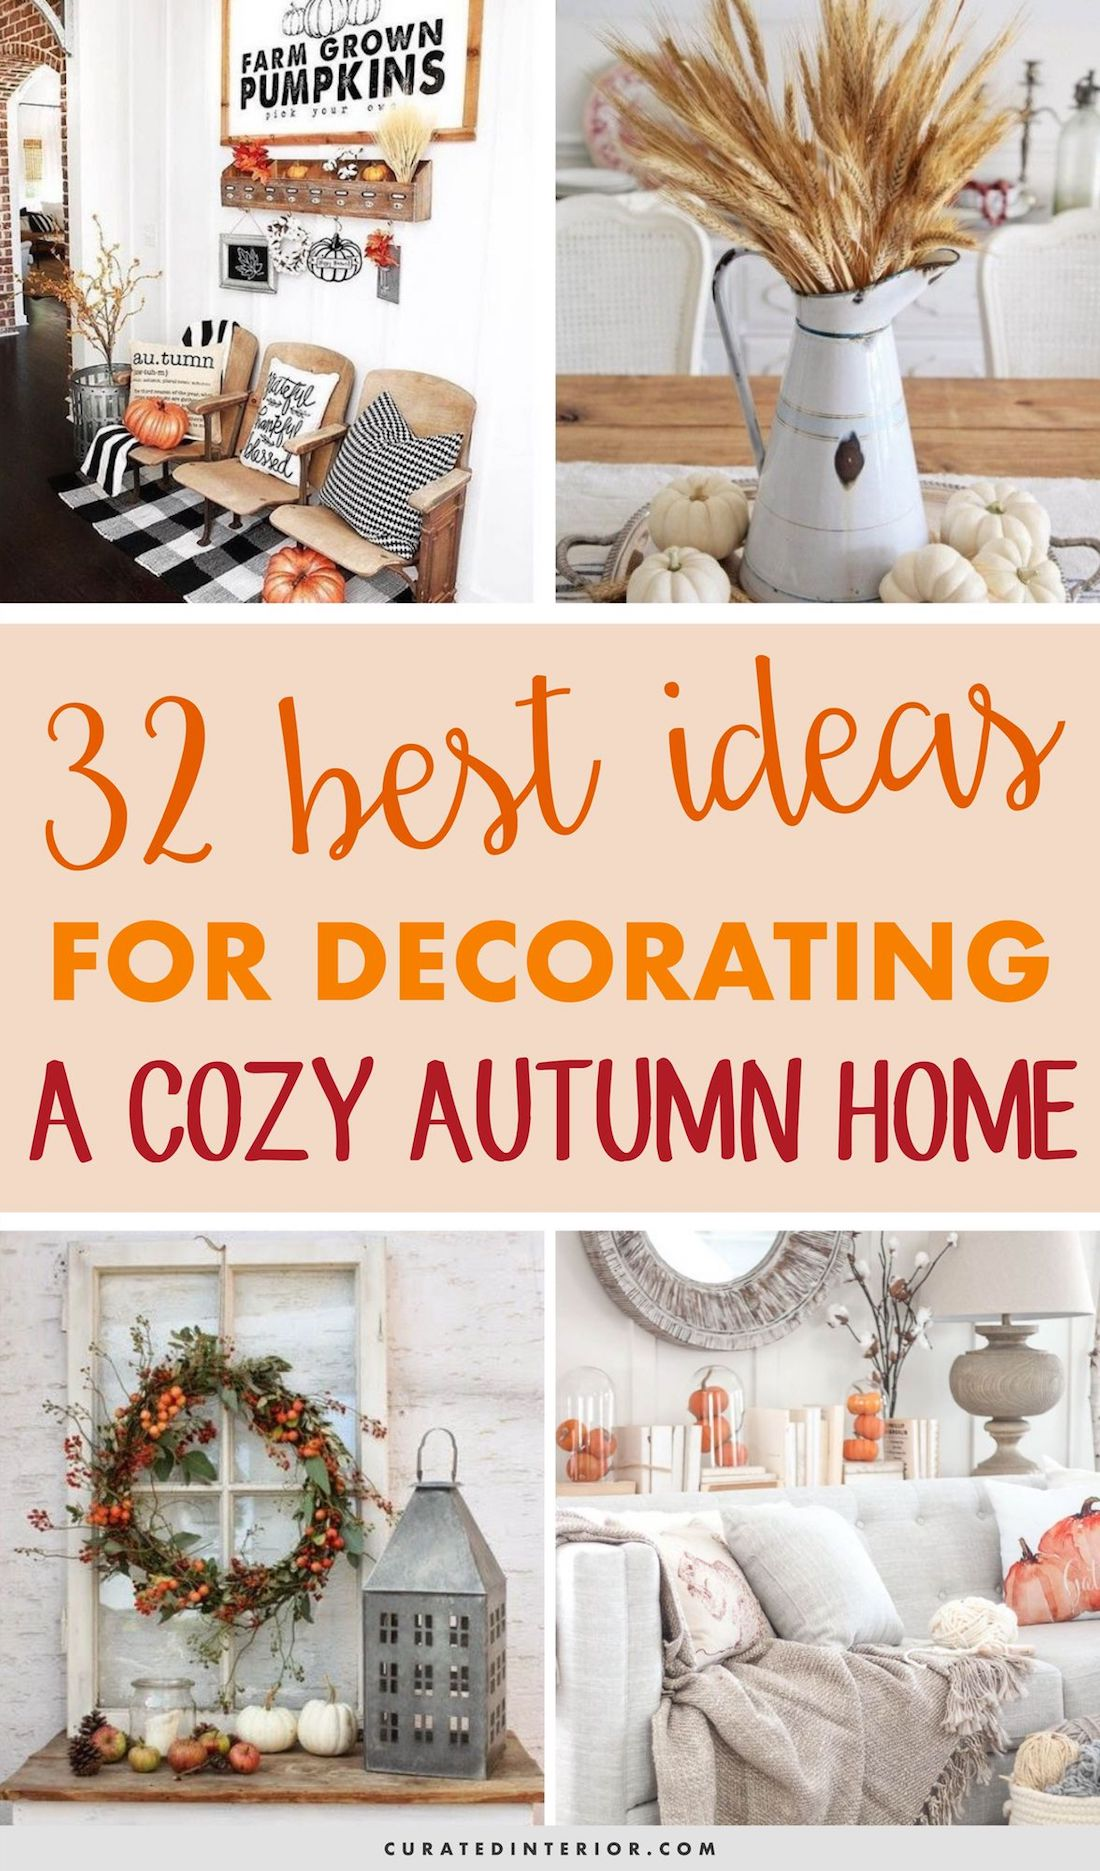 32 BEST Ideas For Decorating A Cozy Autumn Home #FallDecor #FallHomeDecor #FallDecorIdeas #FallHome